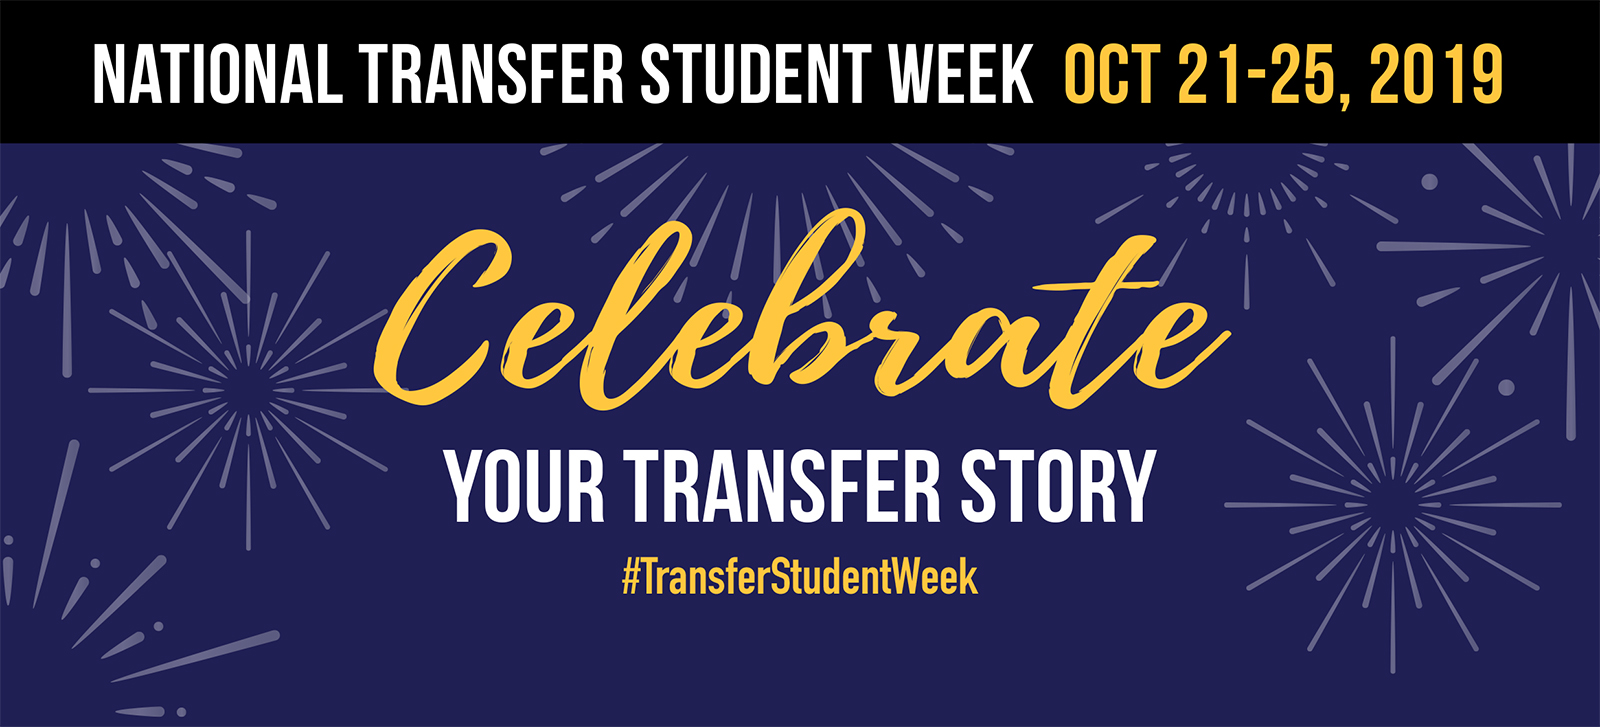 National Transfer Week October 21-25, 2019